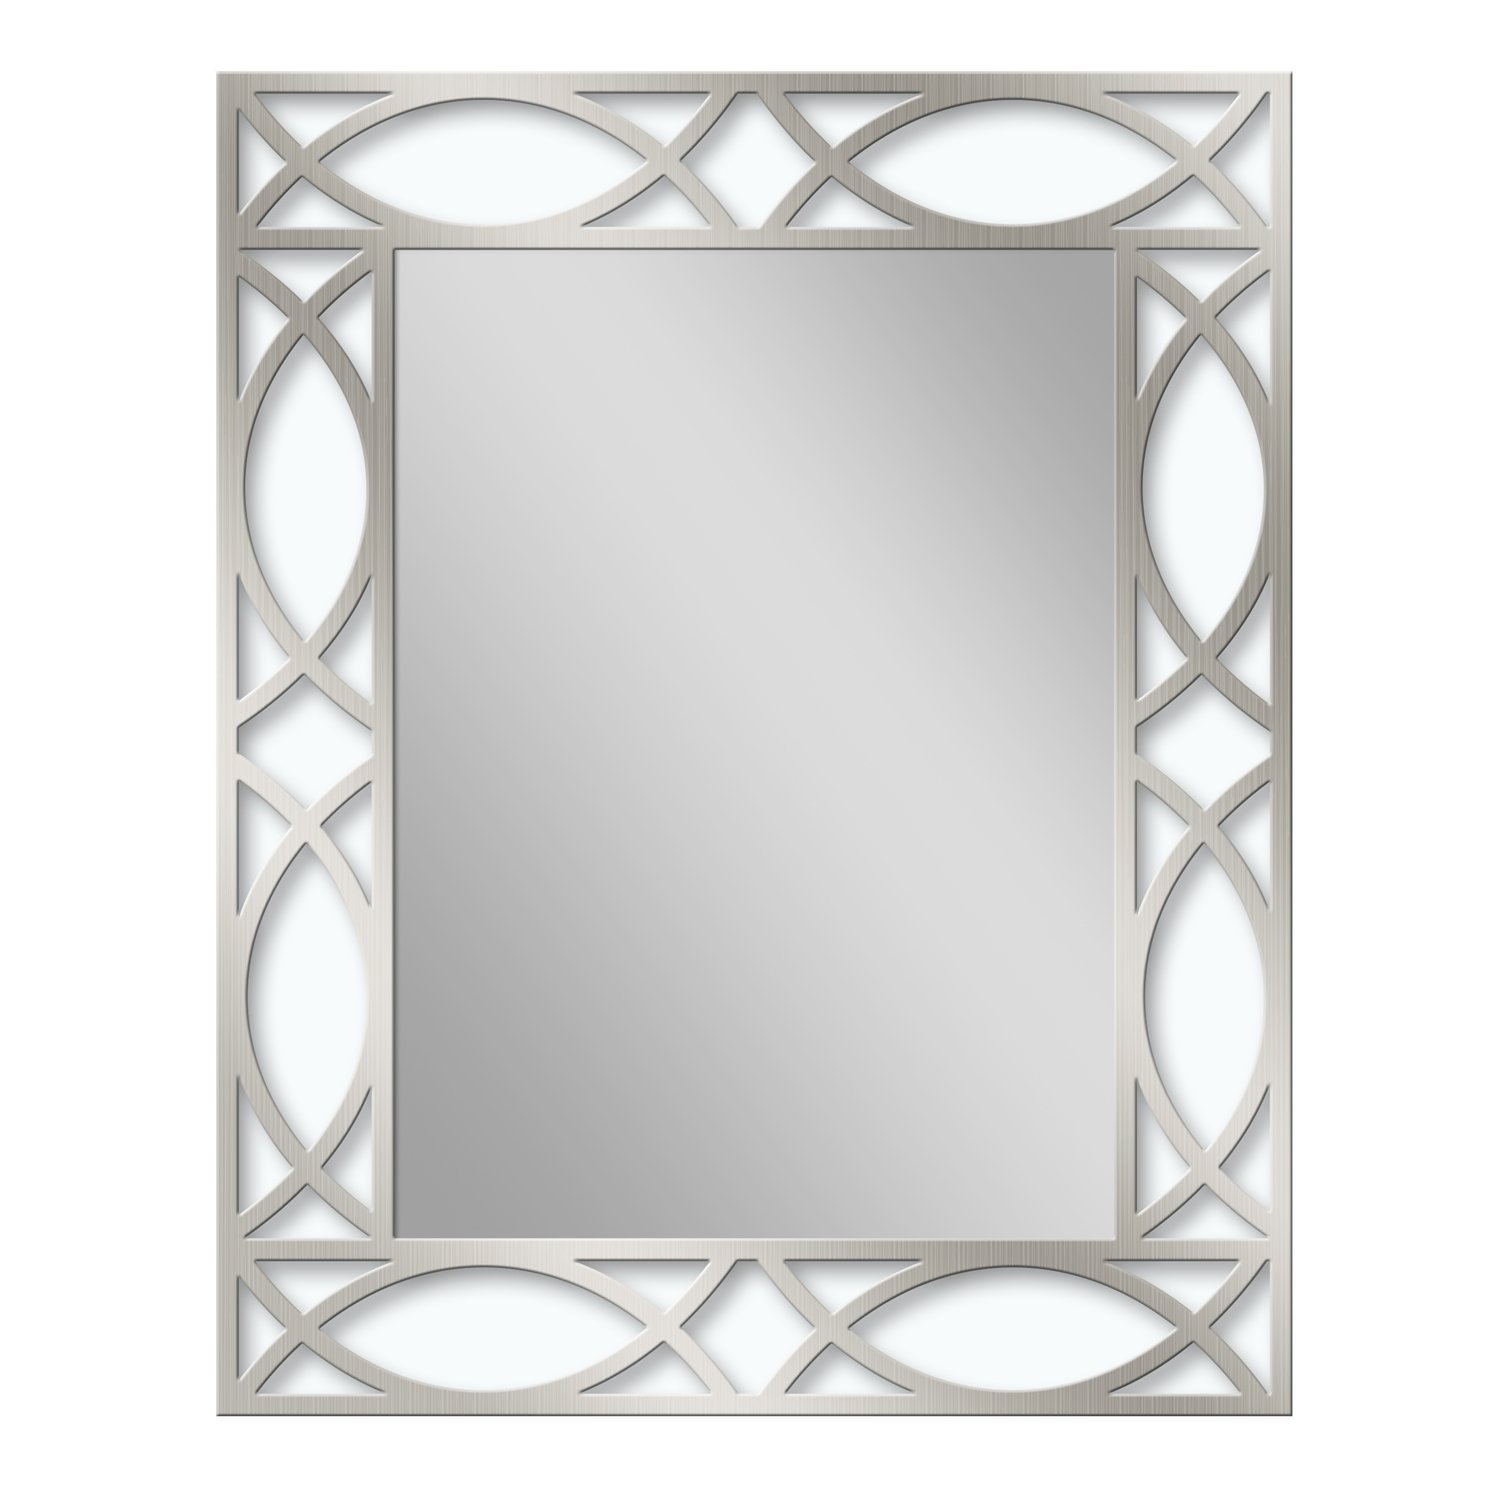 Headwest 8002 Metal Scroll Etched Wall Mirror in BN, Brown